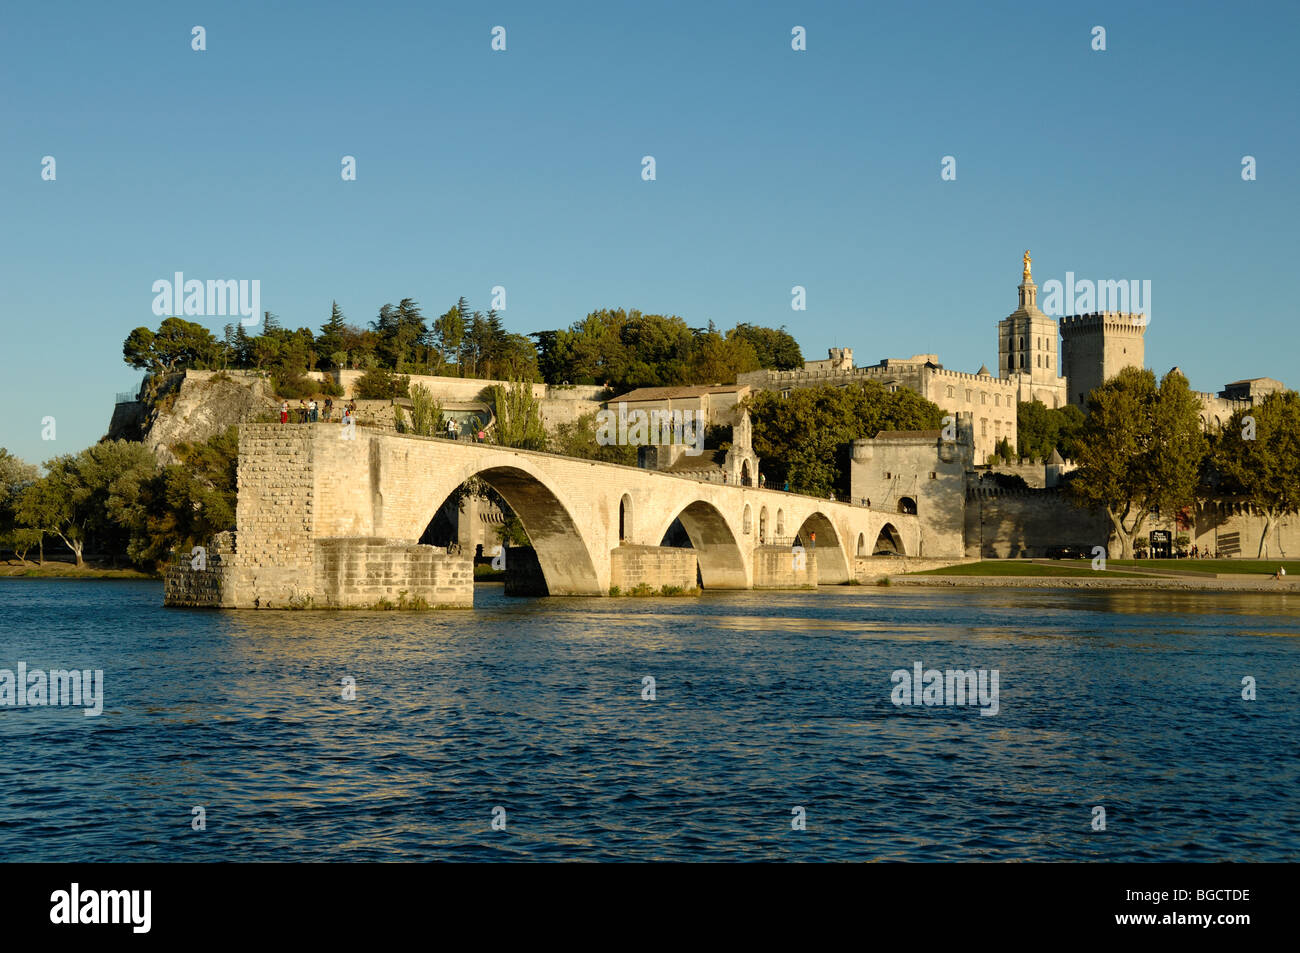 Le Pont d'Avignon or Saint Bénézet Bridge on River Rhone with Palais des Papes or Popes Palace Behind, - Stock Image